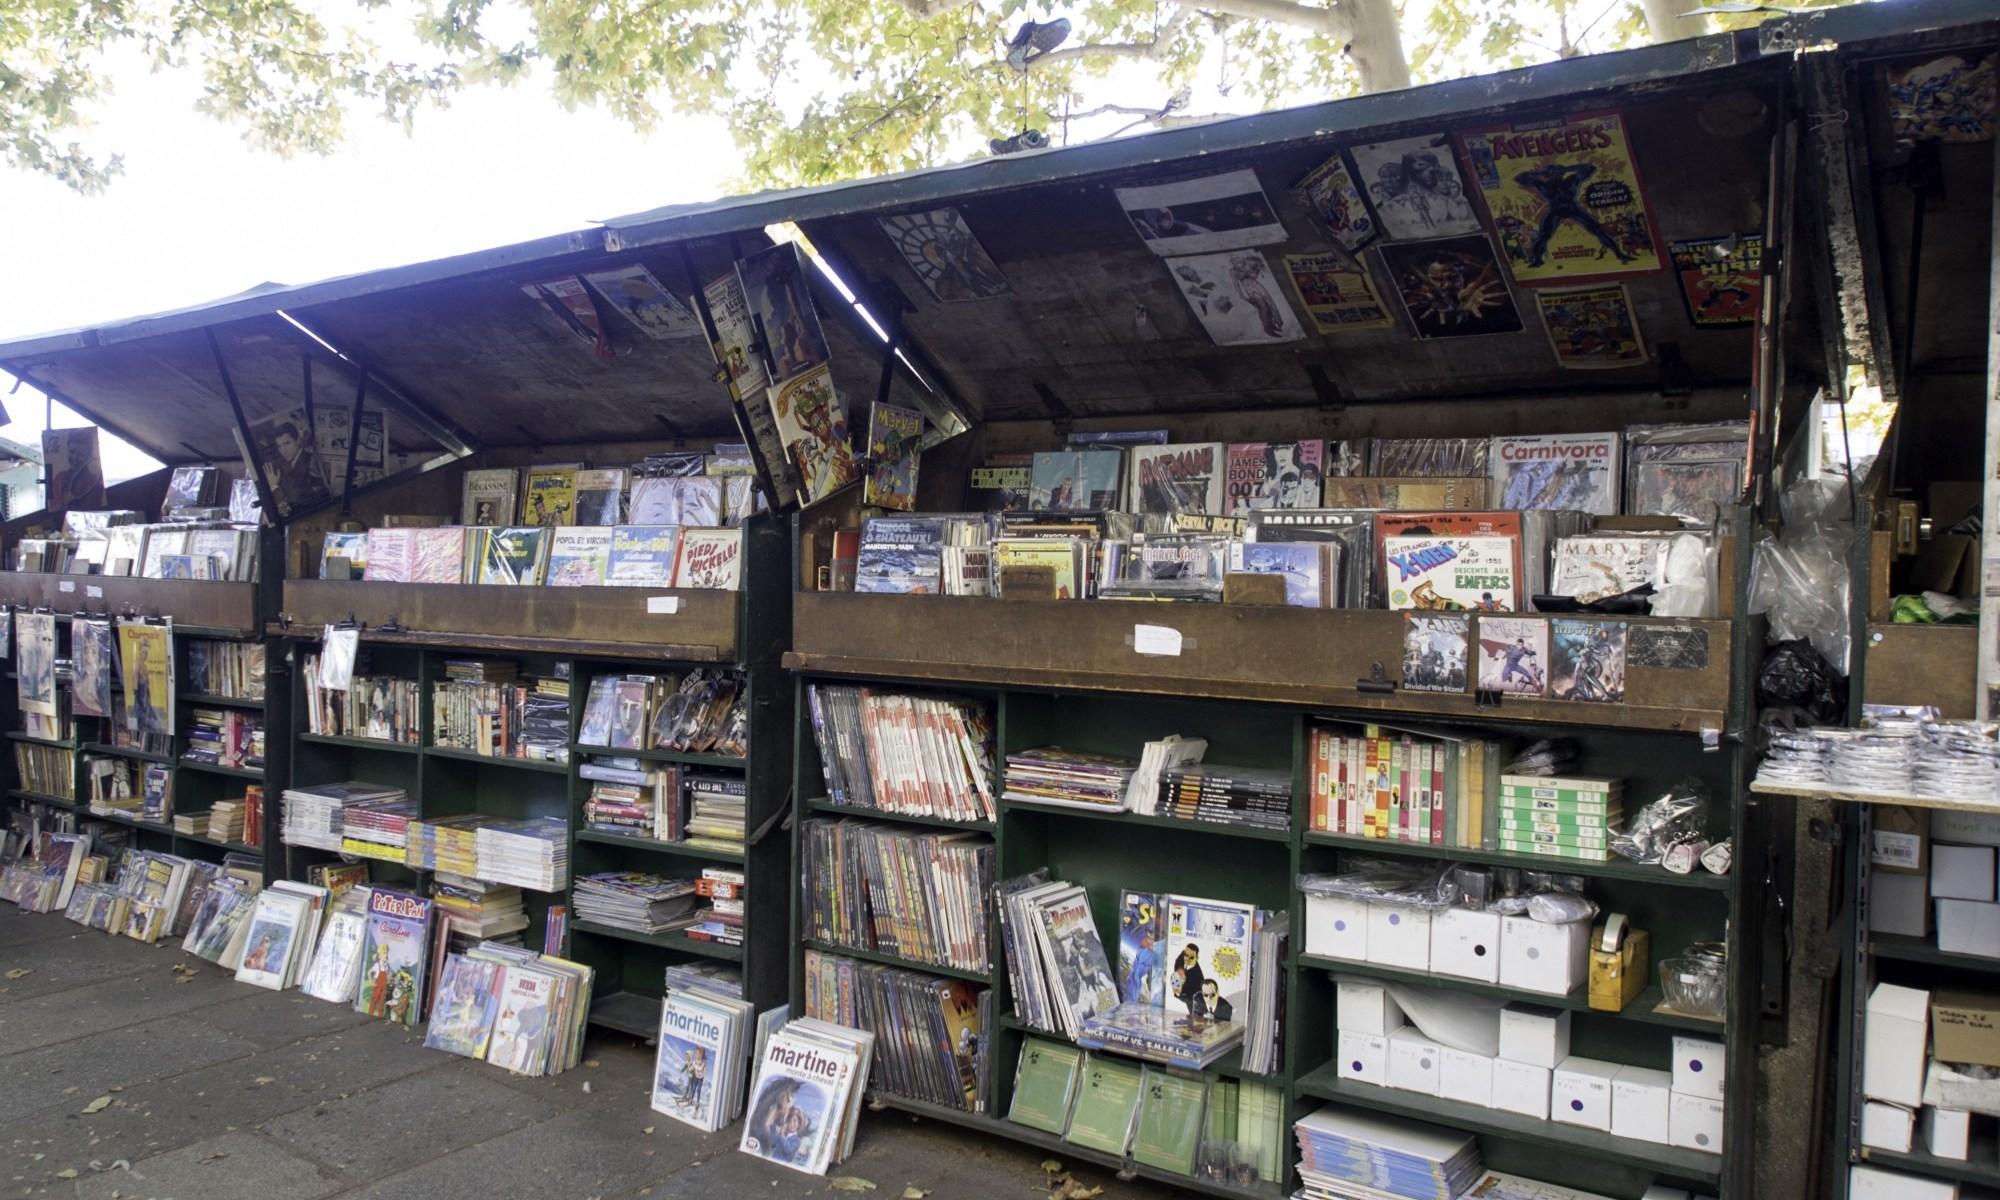 riverside book-stall in Paris